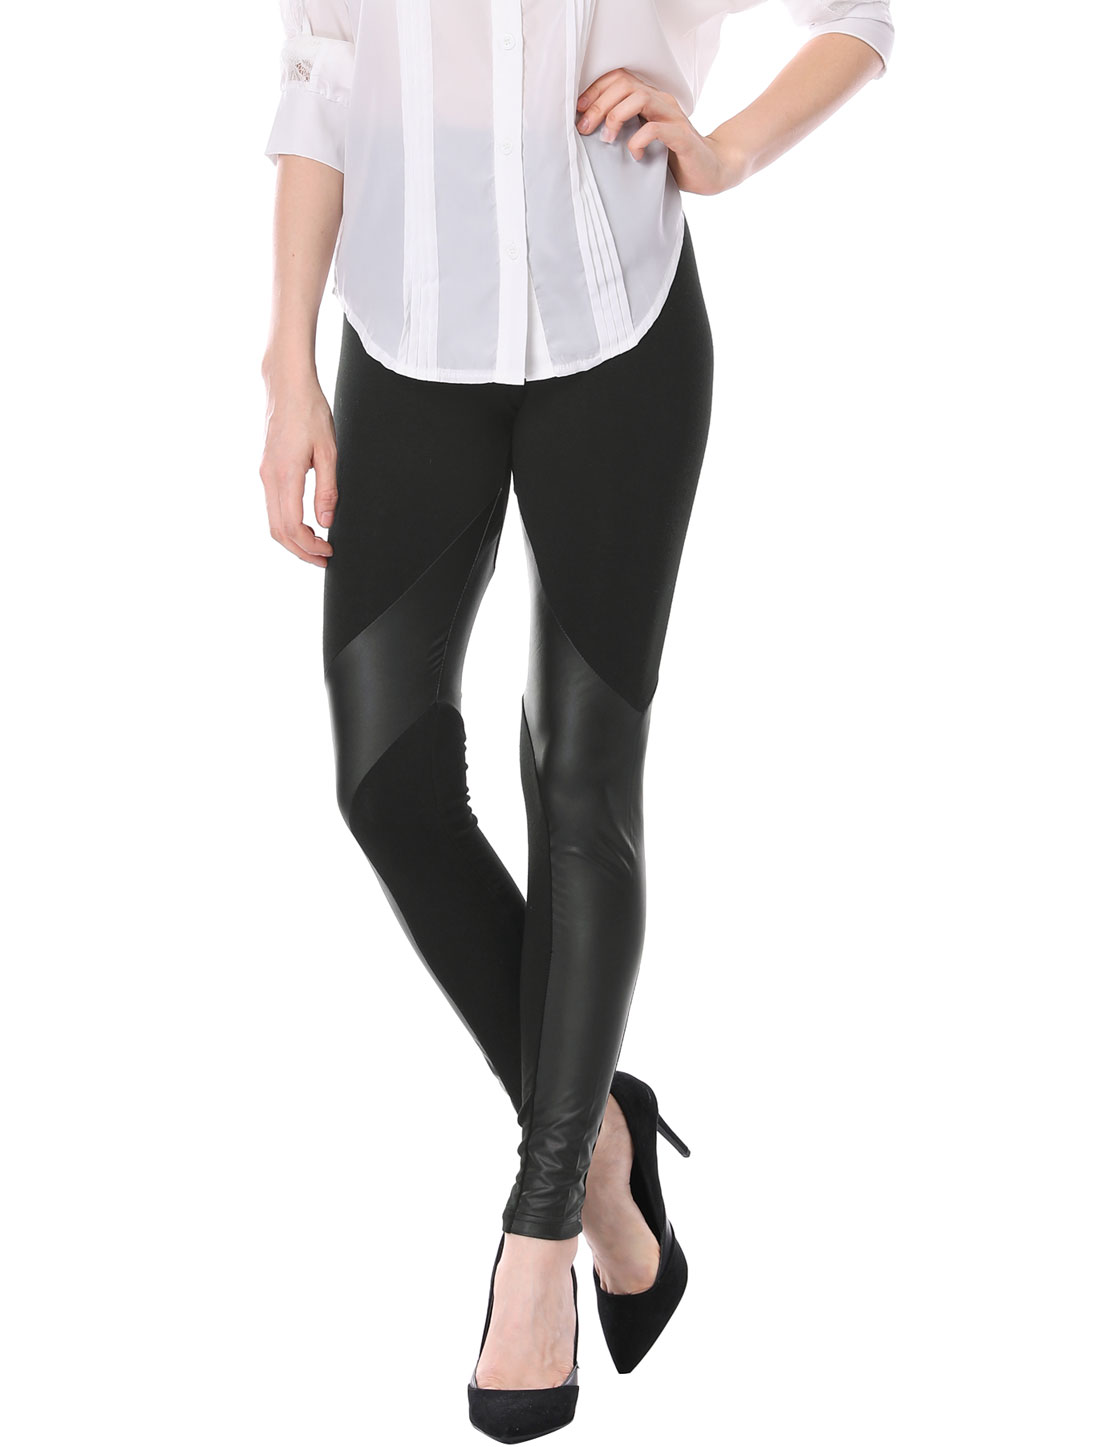 Lady Chic Faux Leather Panel Panel Black Slim Fit Pants Leggings XL